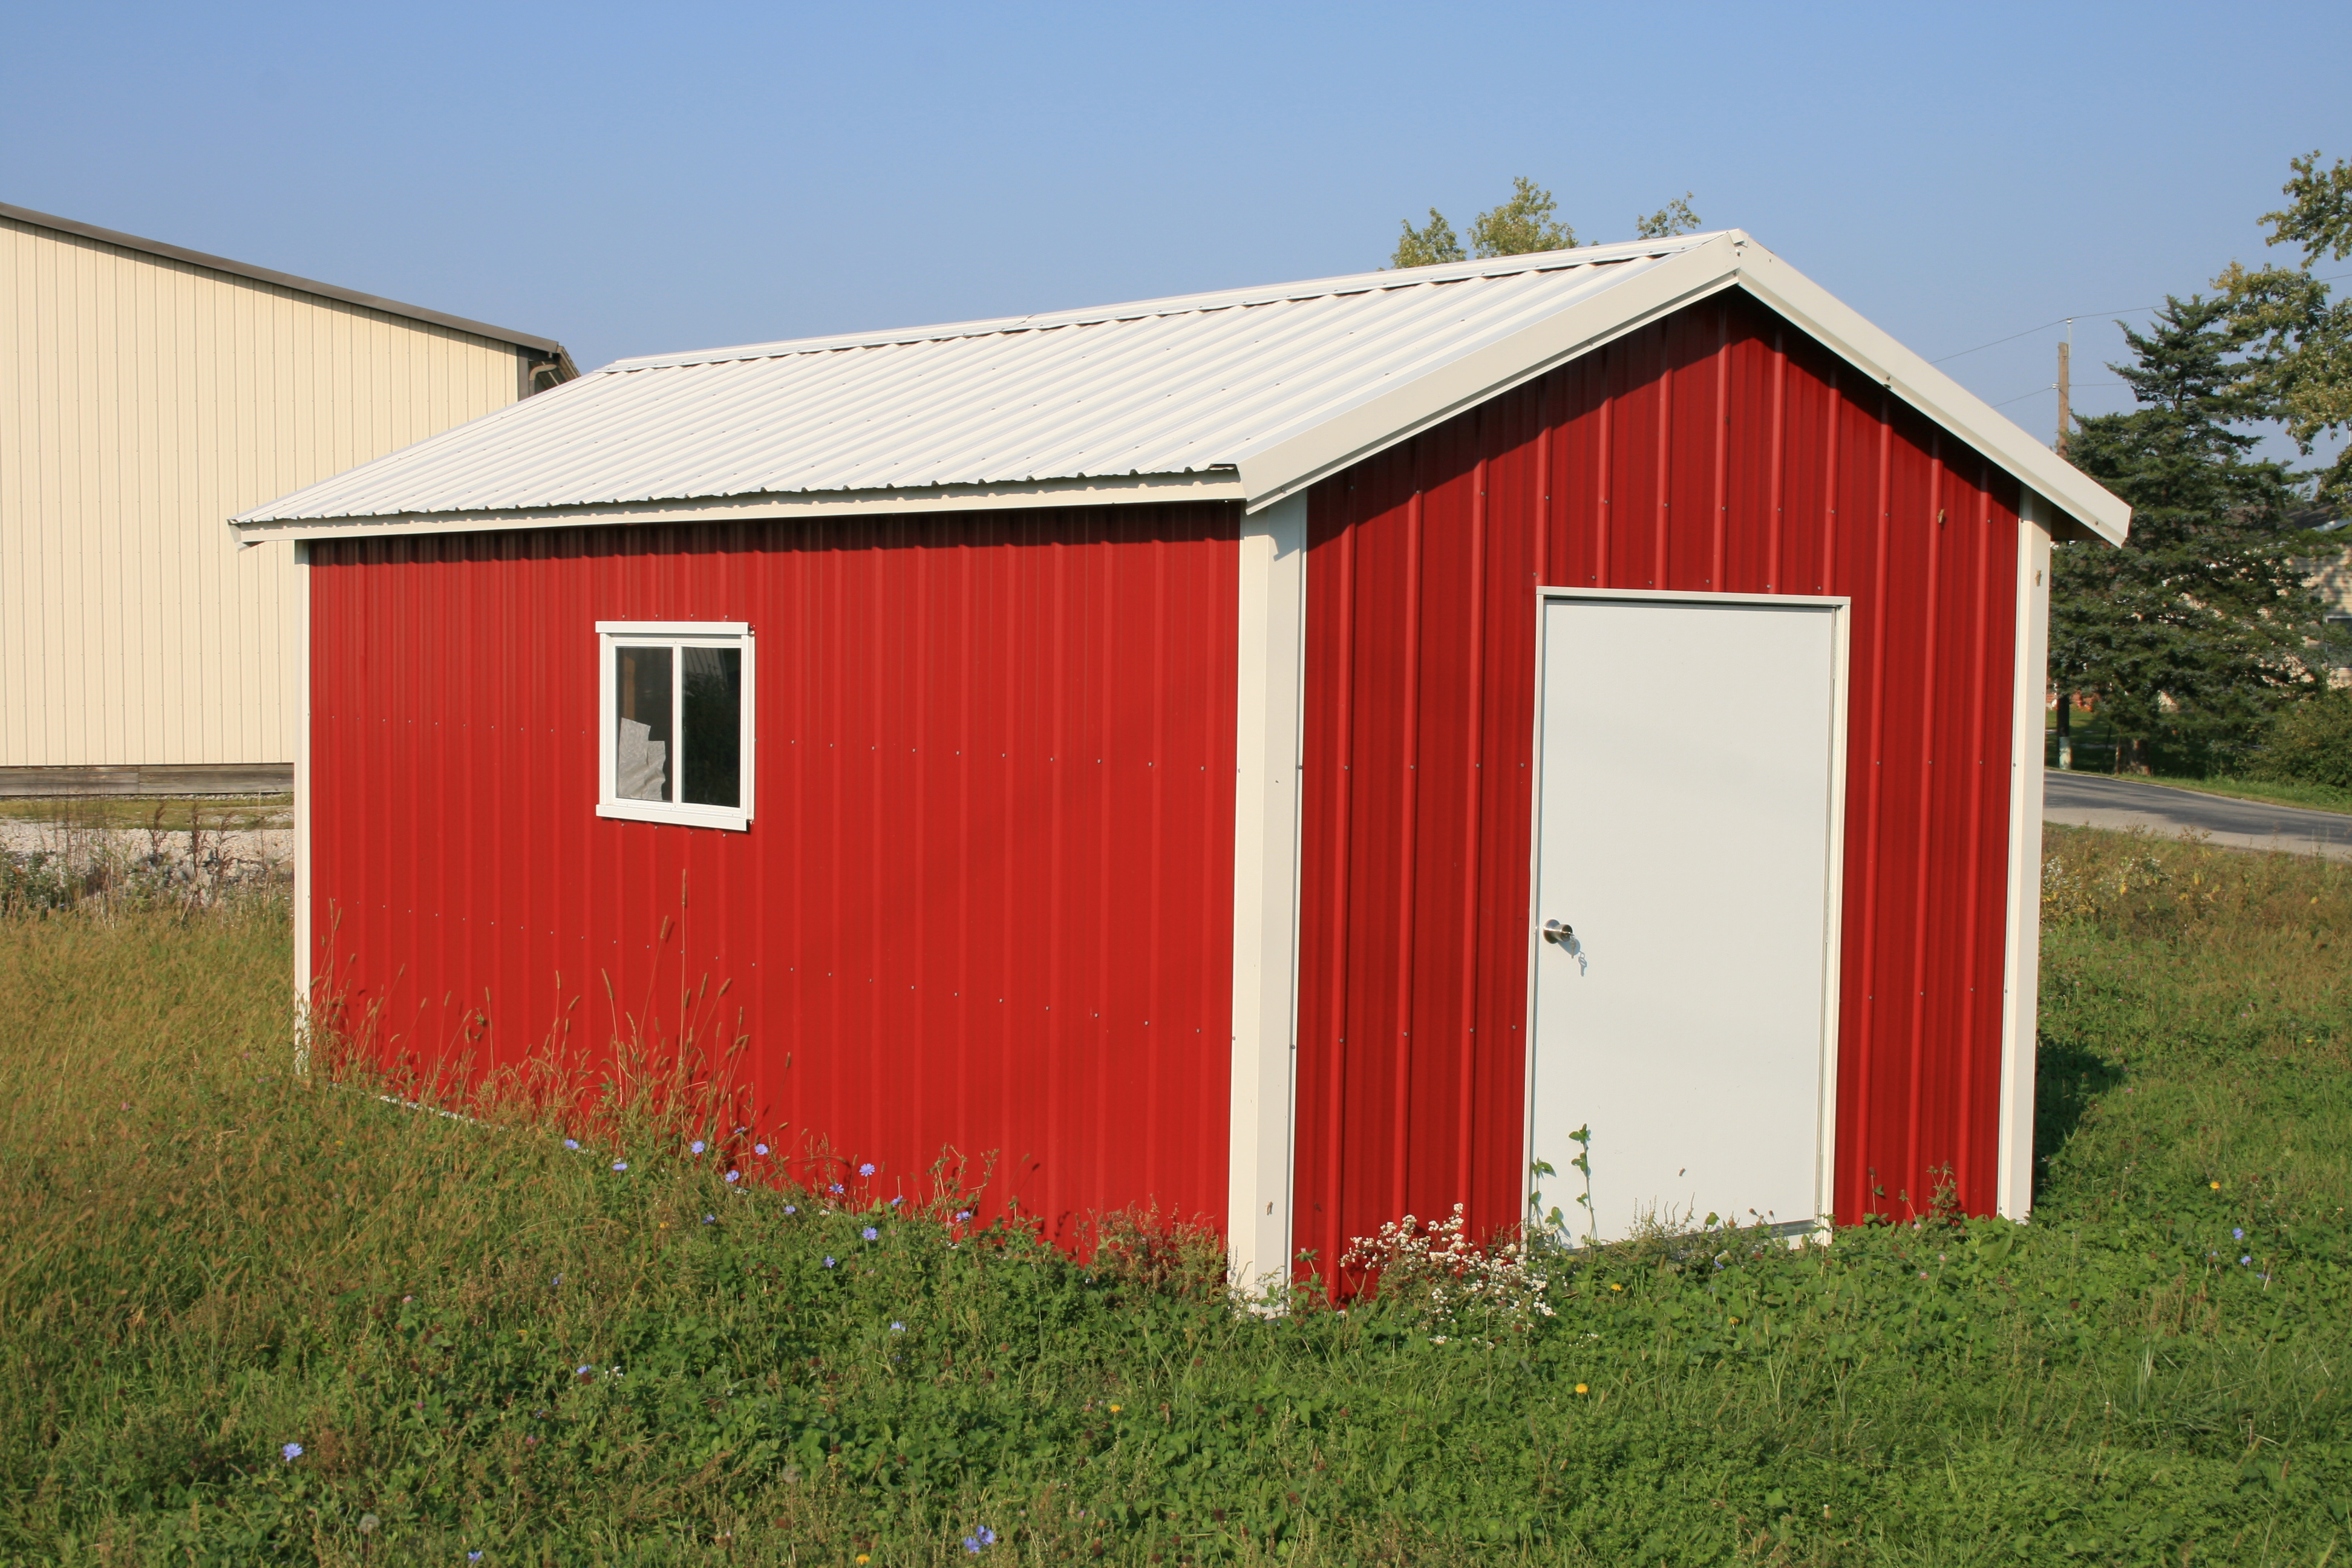 Shelter King Portable Garages : Portable tool sheds shelters king city lumber mound